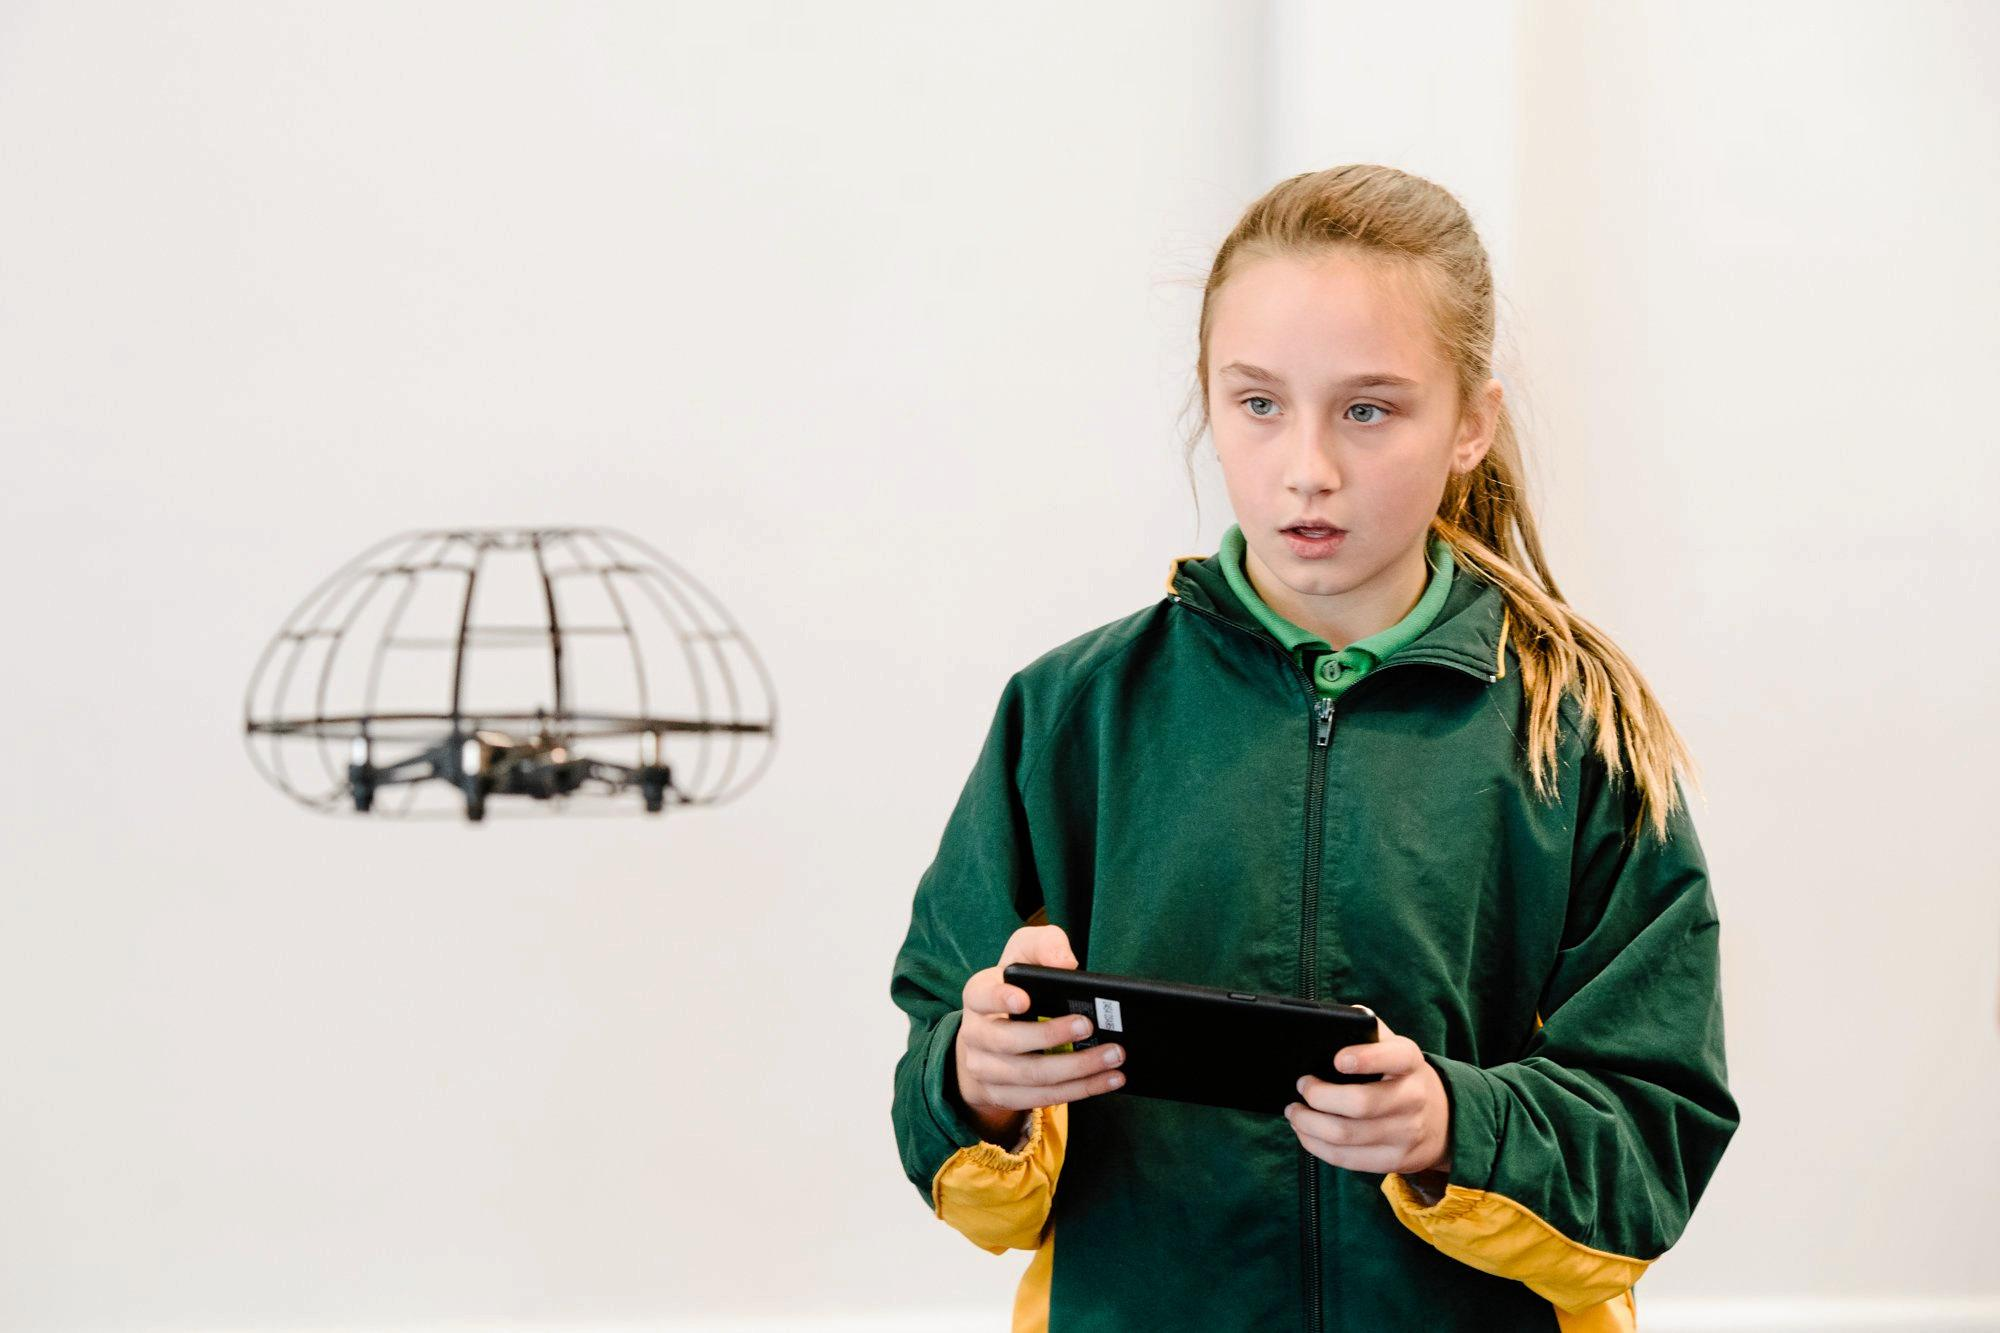 Ava Clark was a picture of concentration as she flew the drone.